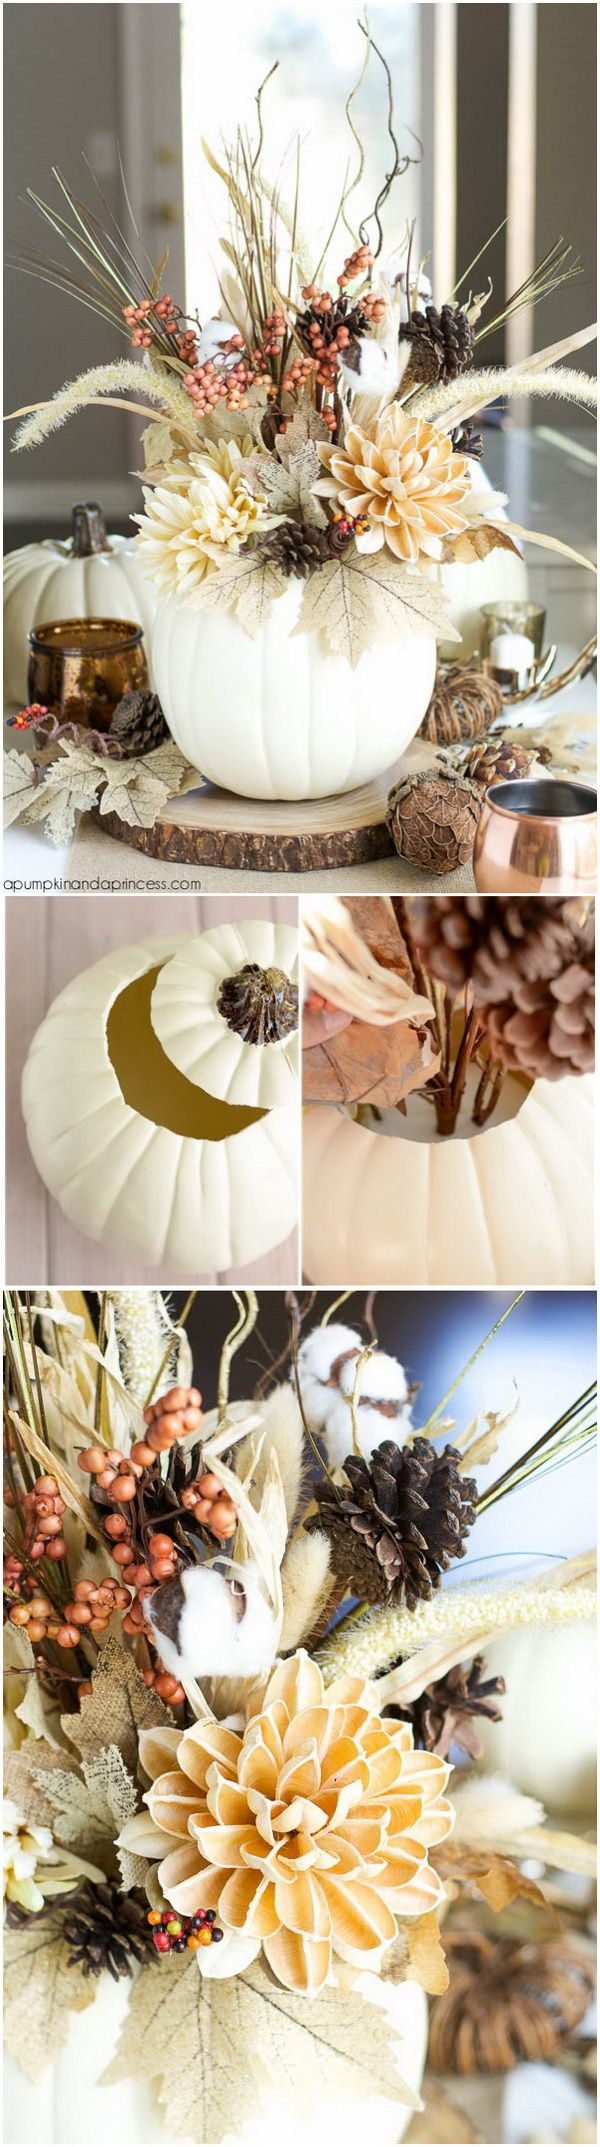 DIY Faux Pumpkin Vase. Grab a faux pumpkin from your local dollar store and learn how to turn it into a pretty fall vase like this one. An easy and inexpensive project to create a festive Fall centerpiece that will last throughout the season.